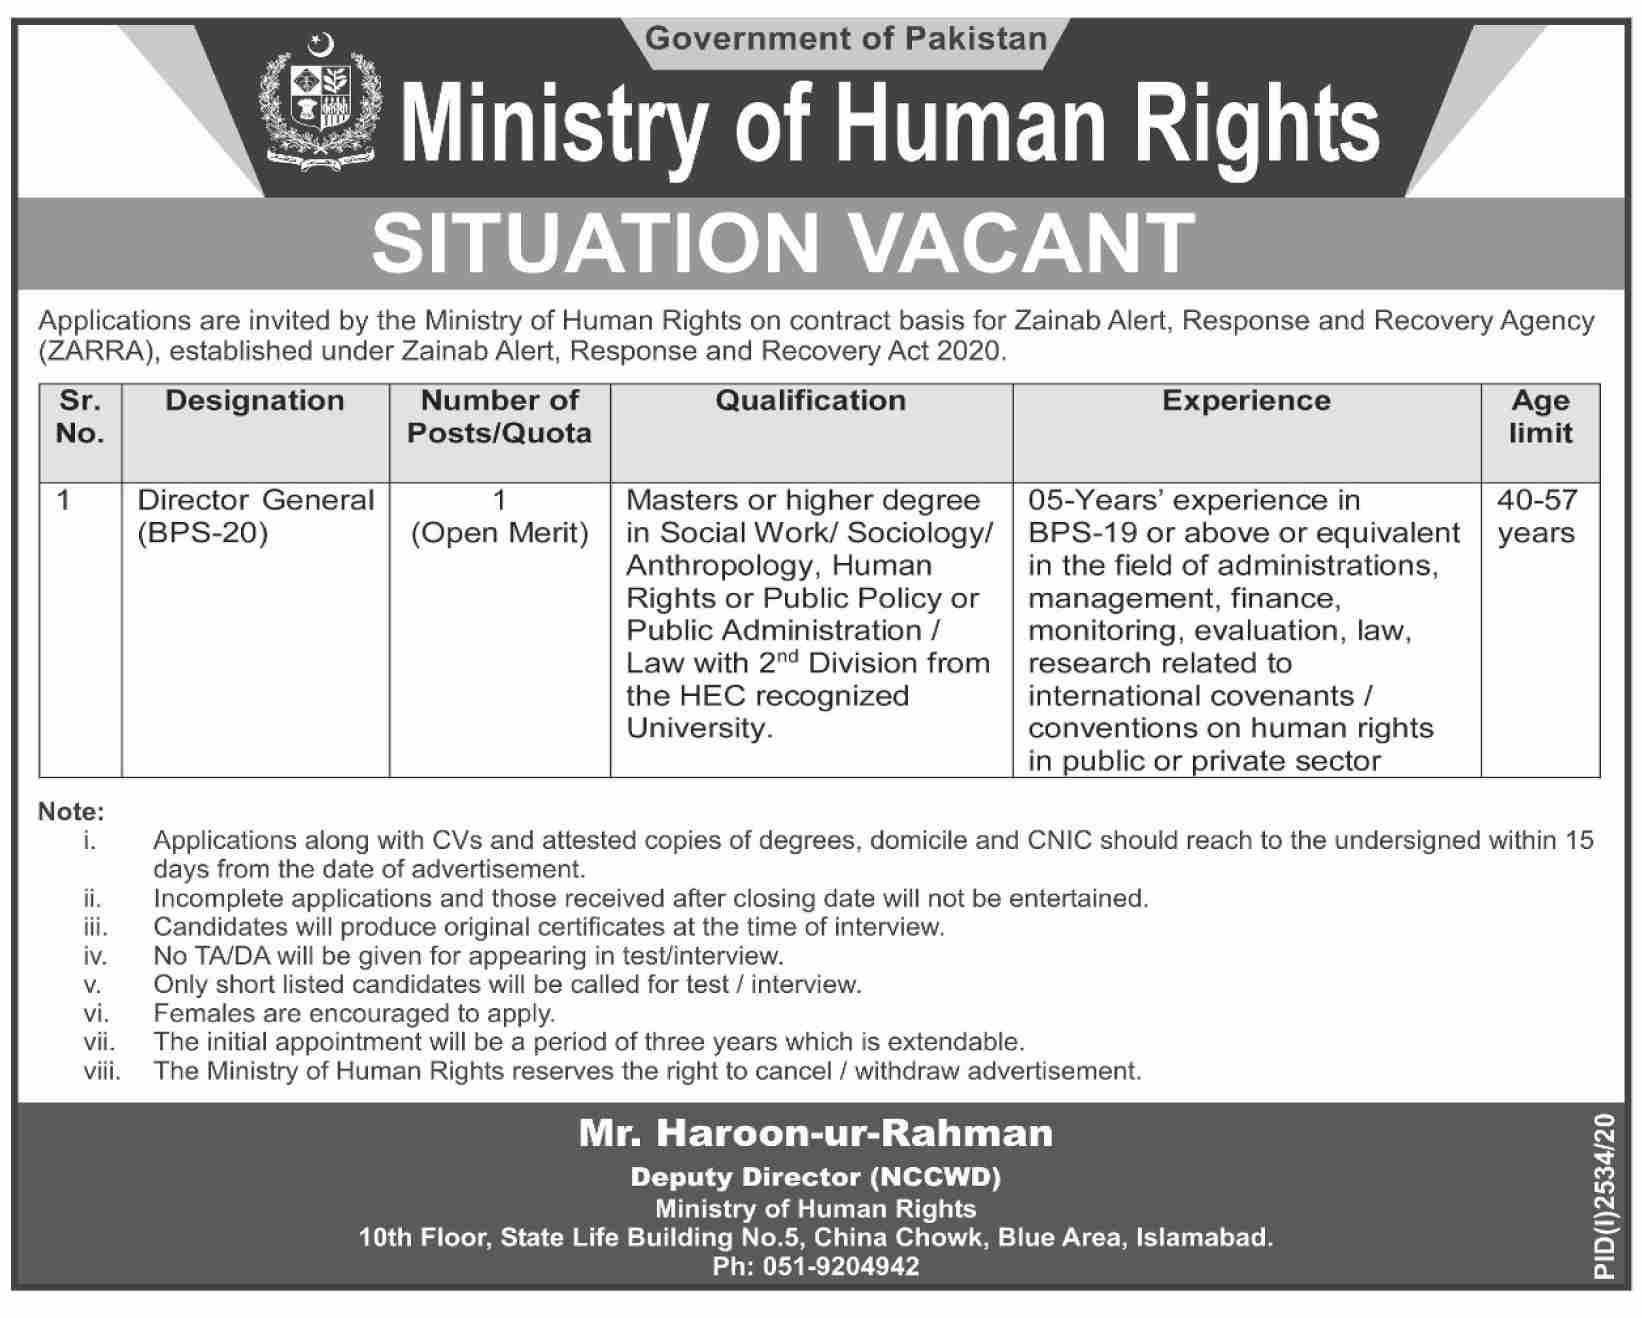 Government of Pakistan Ministry of Human Rights Jobs November 2020